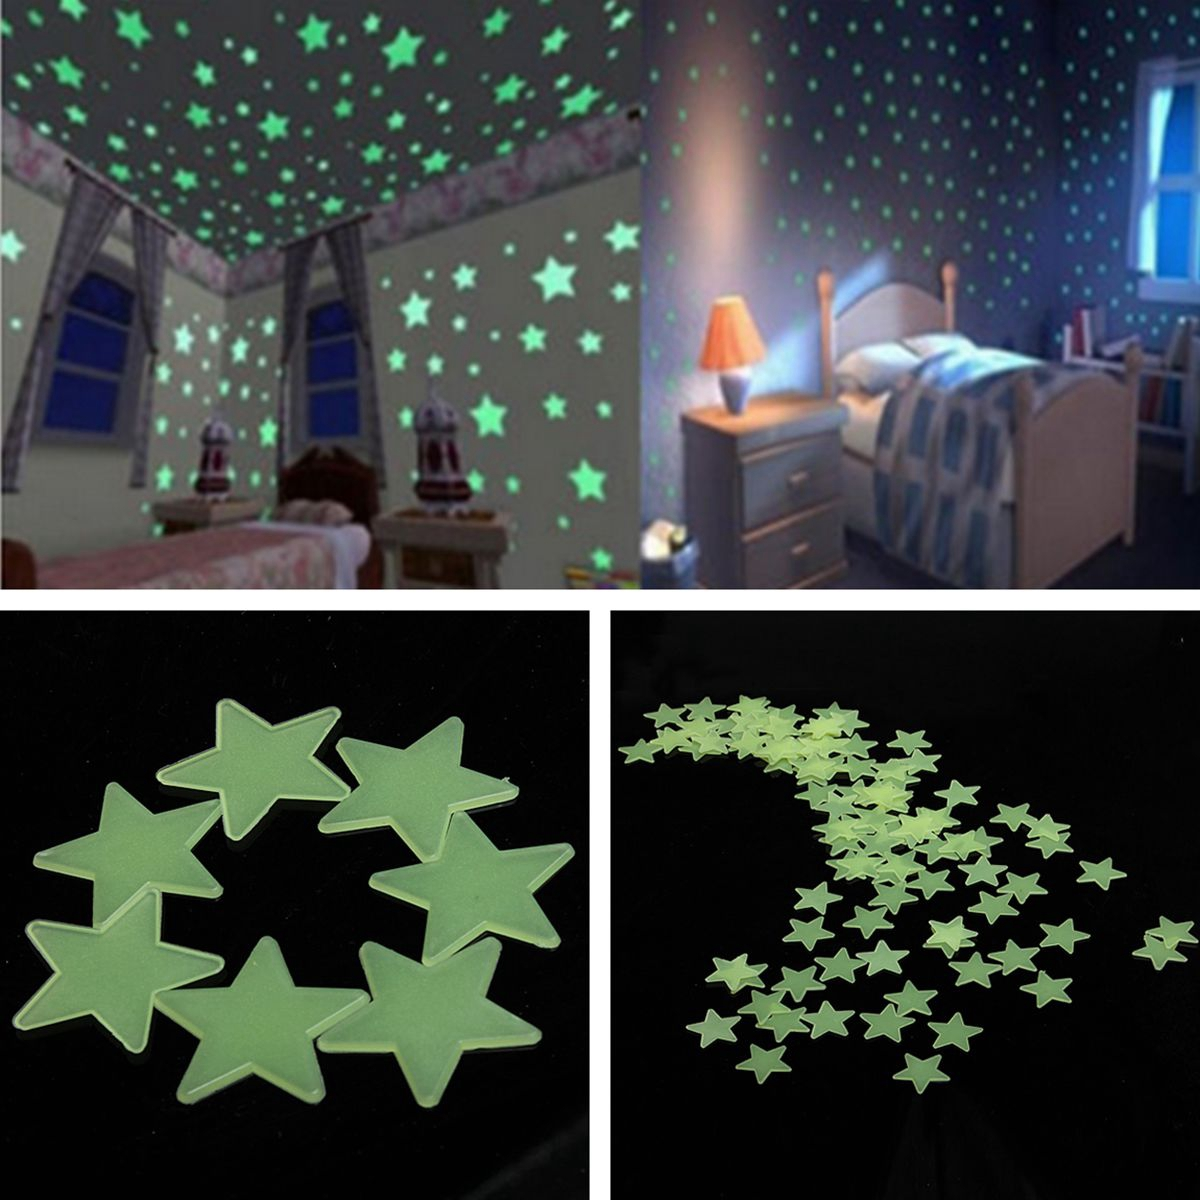 Bedroom Ceiling Star Lights Dark Brown Carpet Bedroom Ideas Vintage Black And White Bedroom Ideas Native American Bedroom Decorating Ideas: 100 Glow In The Dark Stars Shape Stickers For Home Ceiling